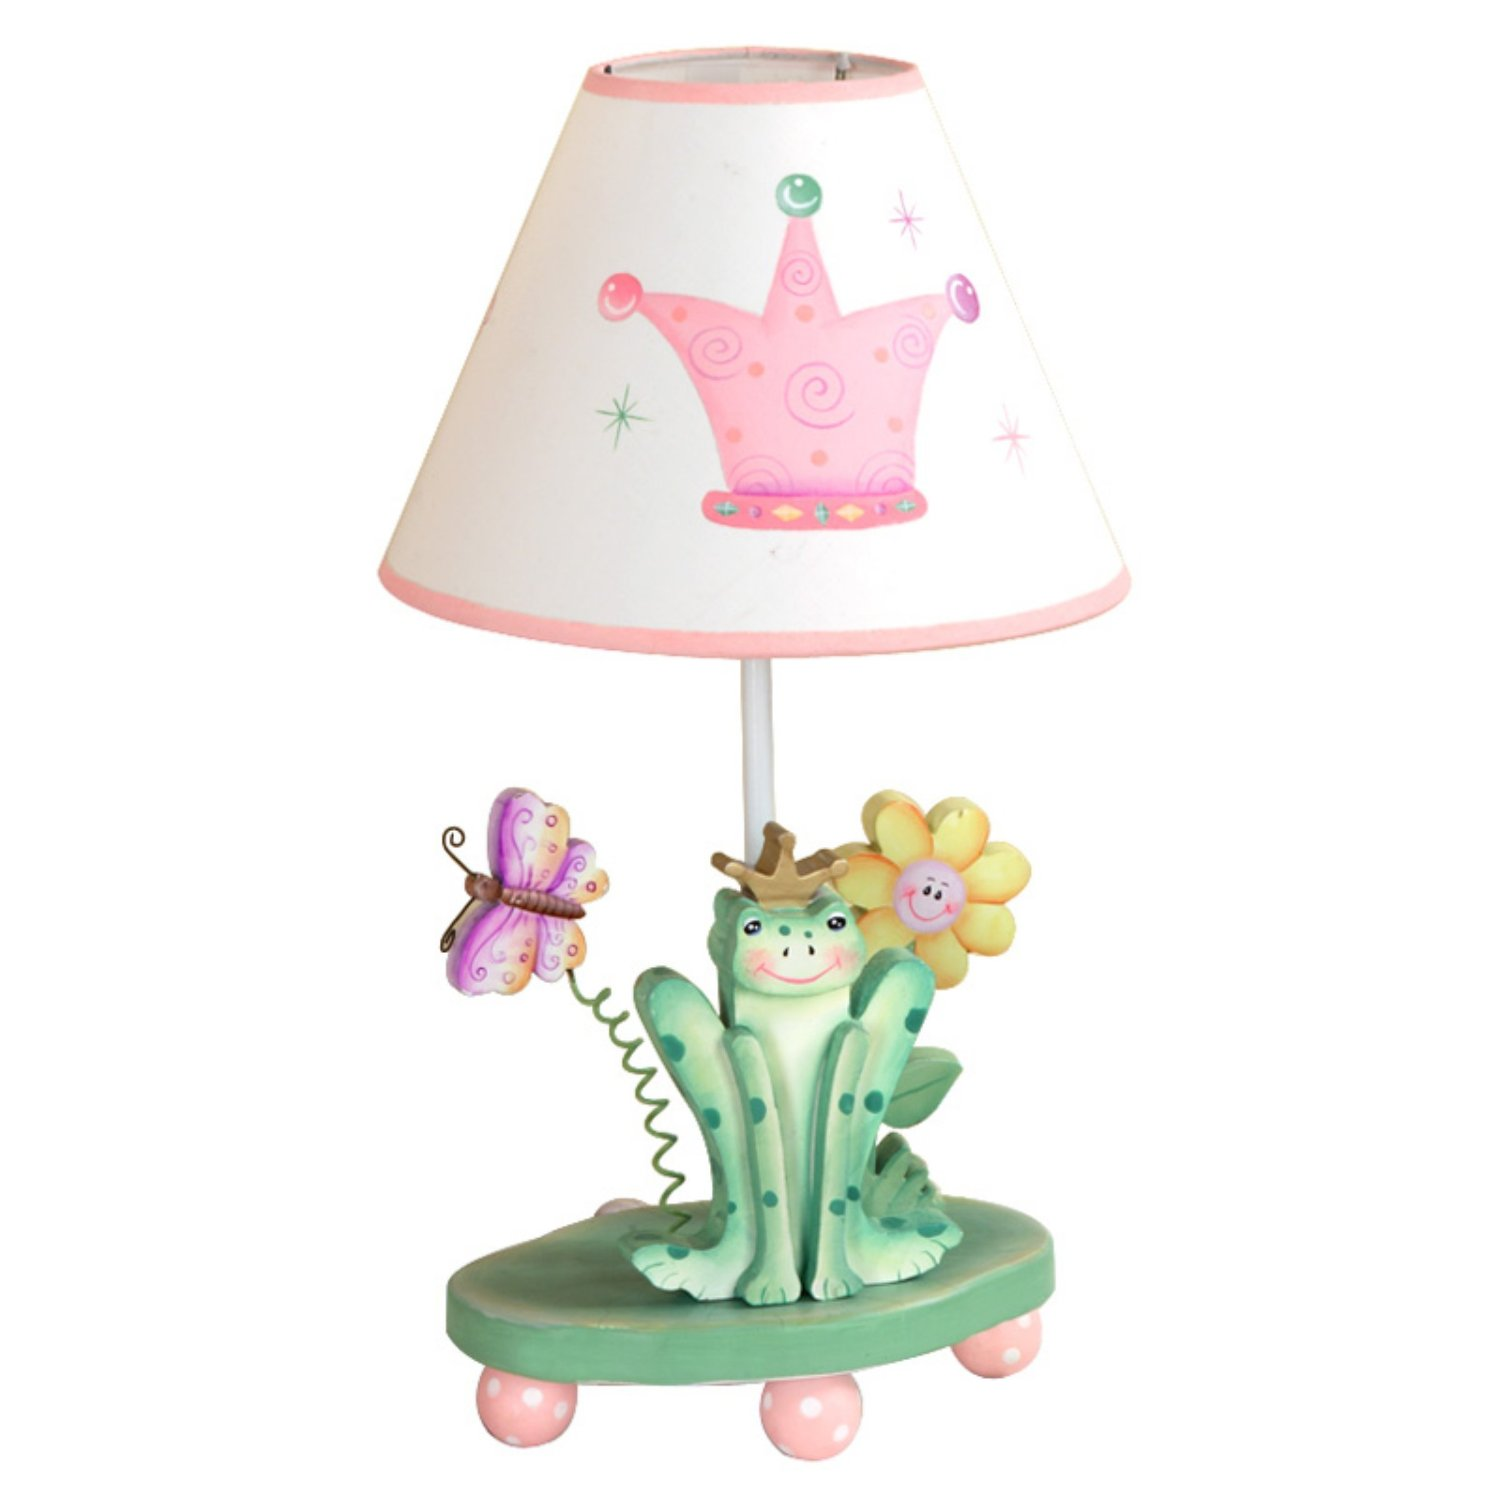 Interior Design Ideas: Cute lamps For Kids Rooms Lighting